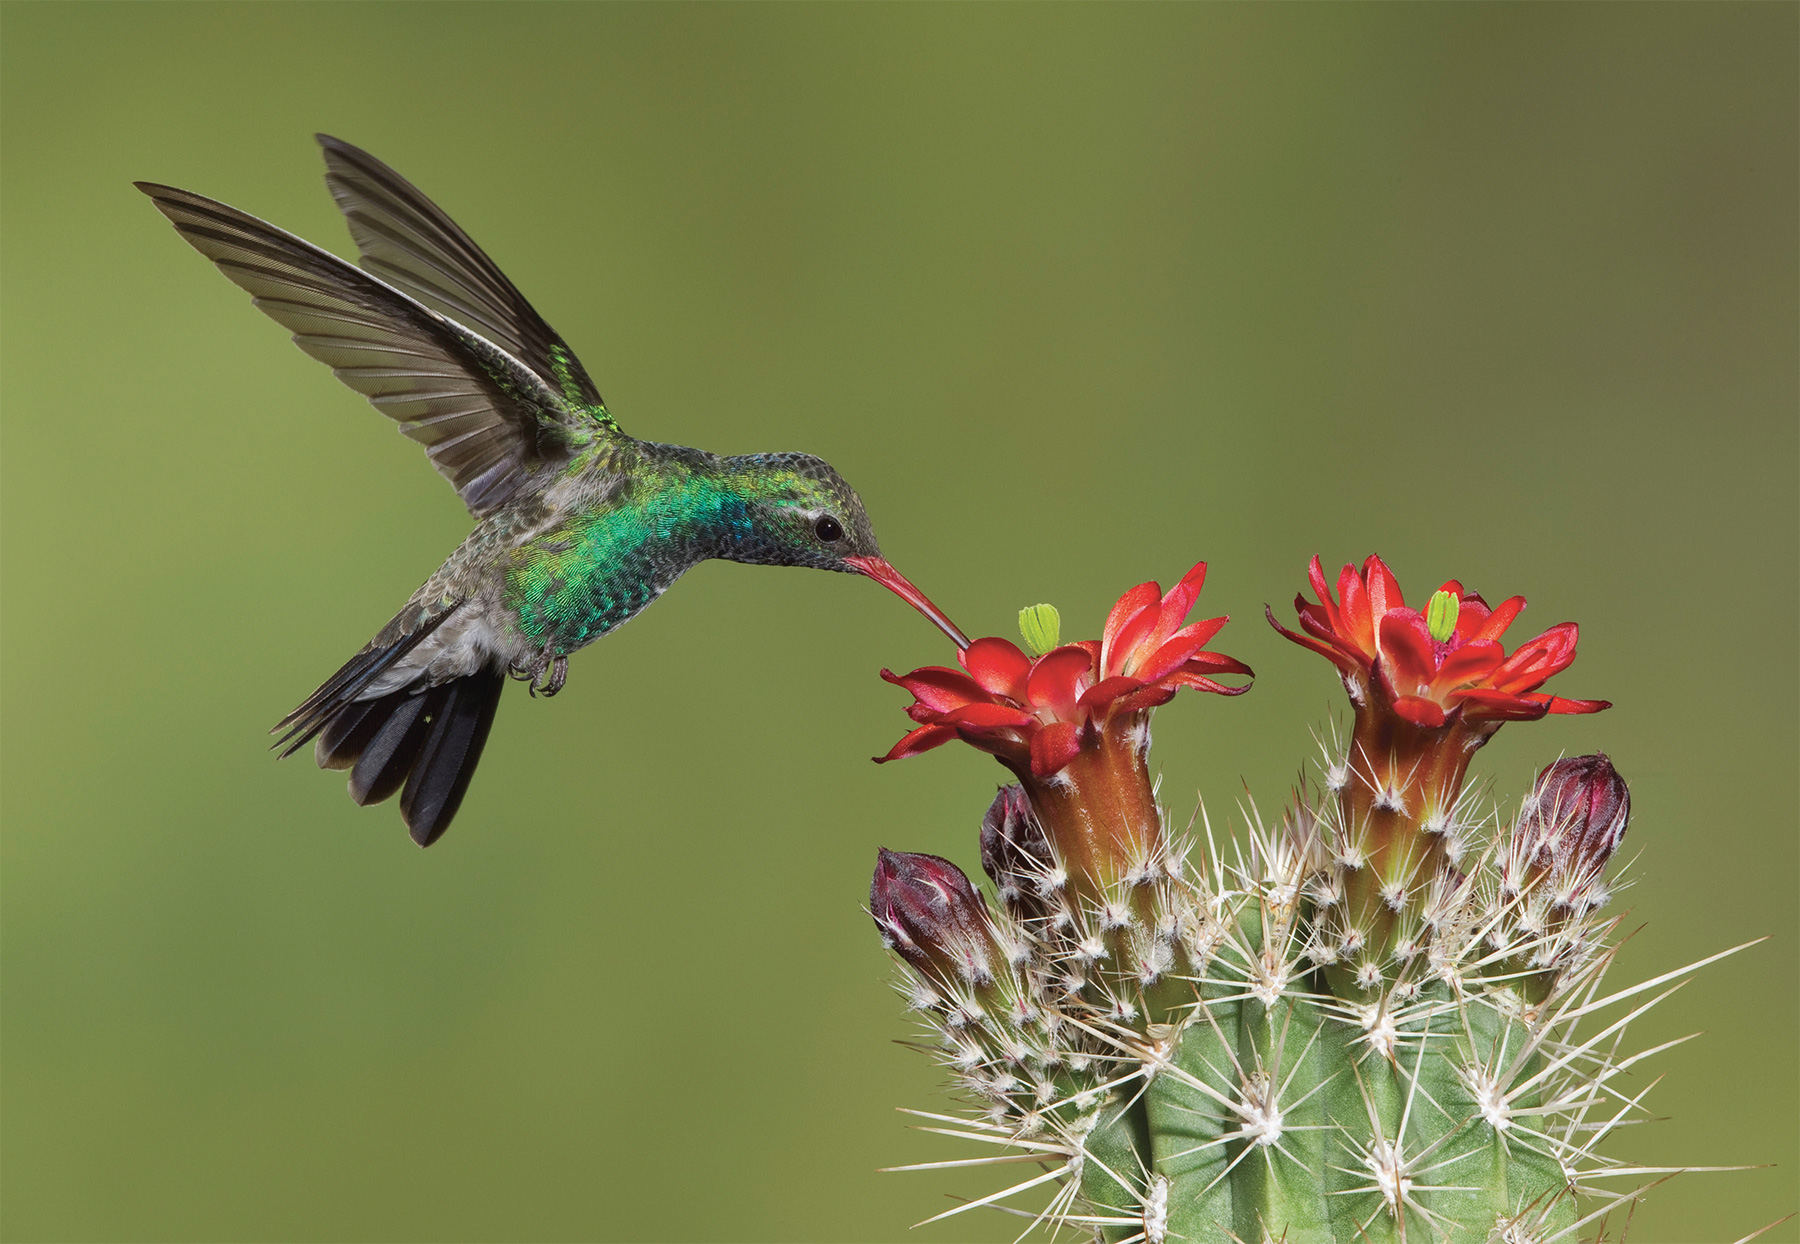 Broad-billed hummingbird (male) by Charles Melton.